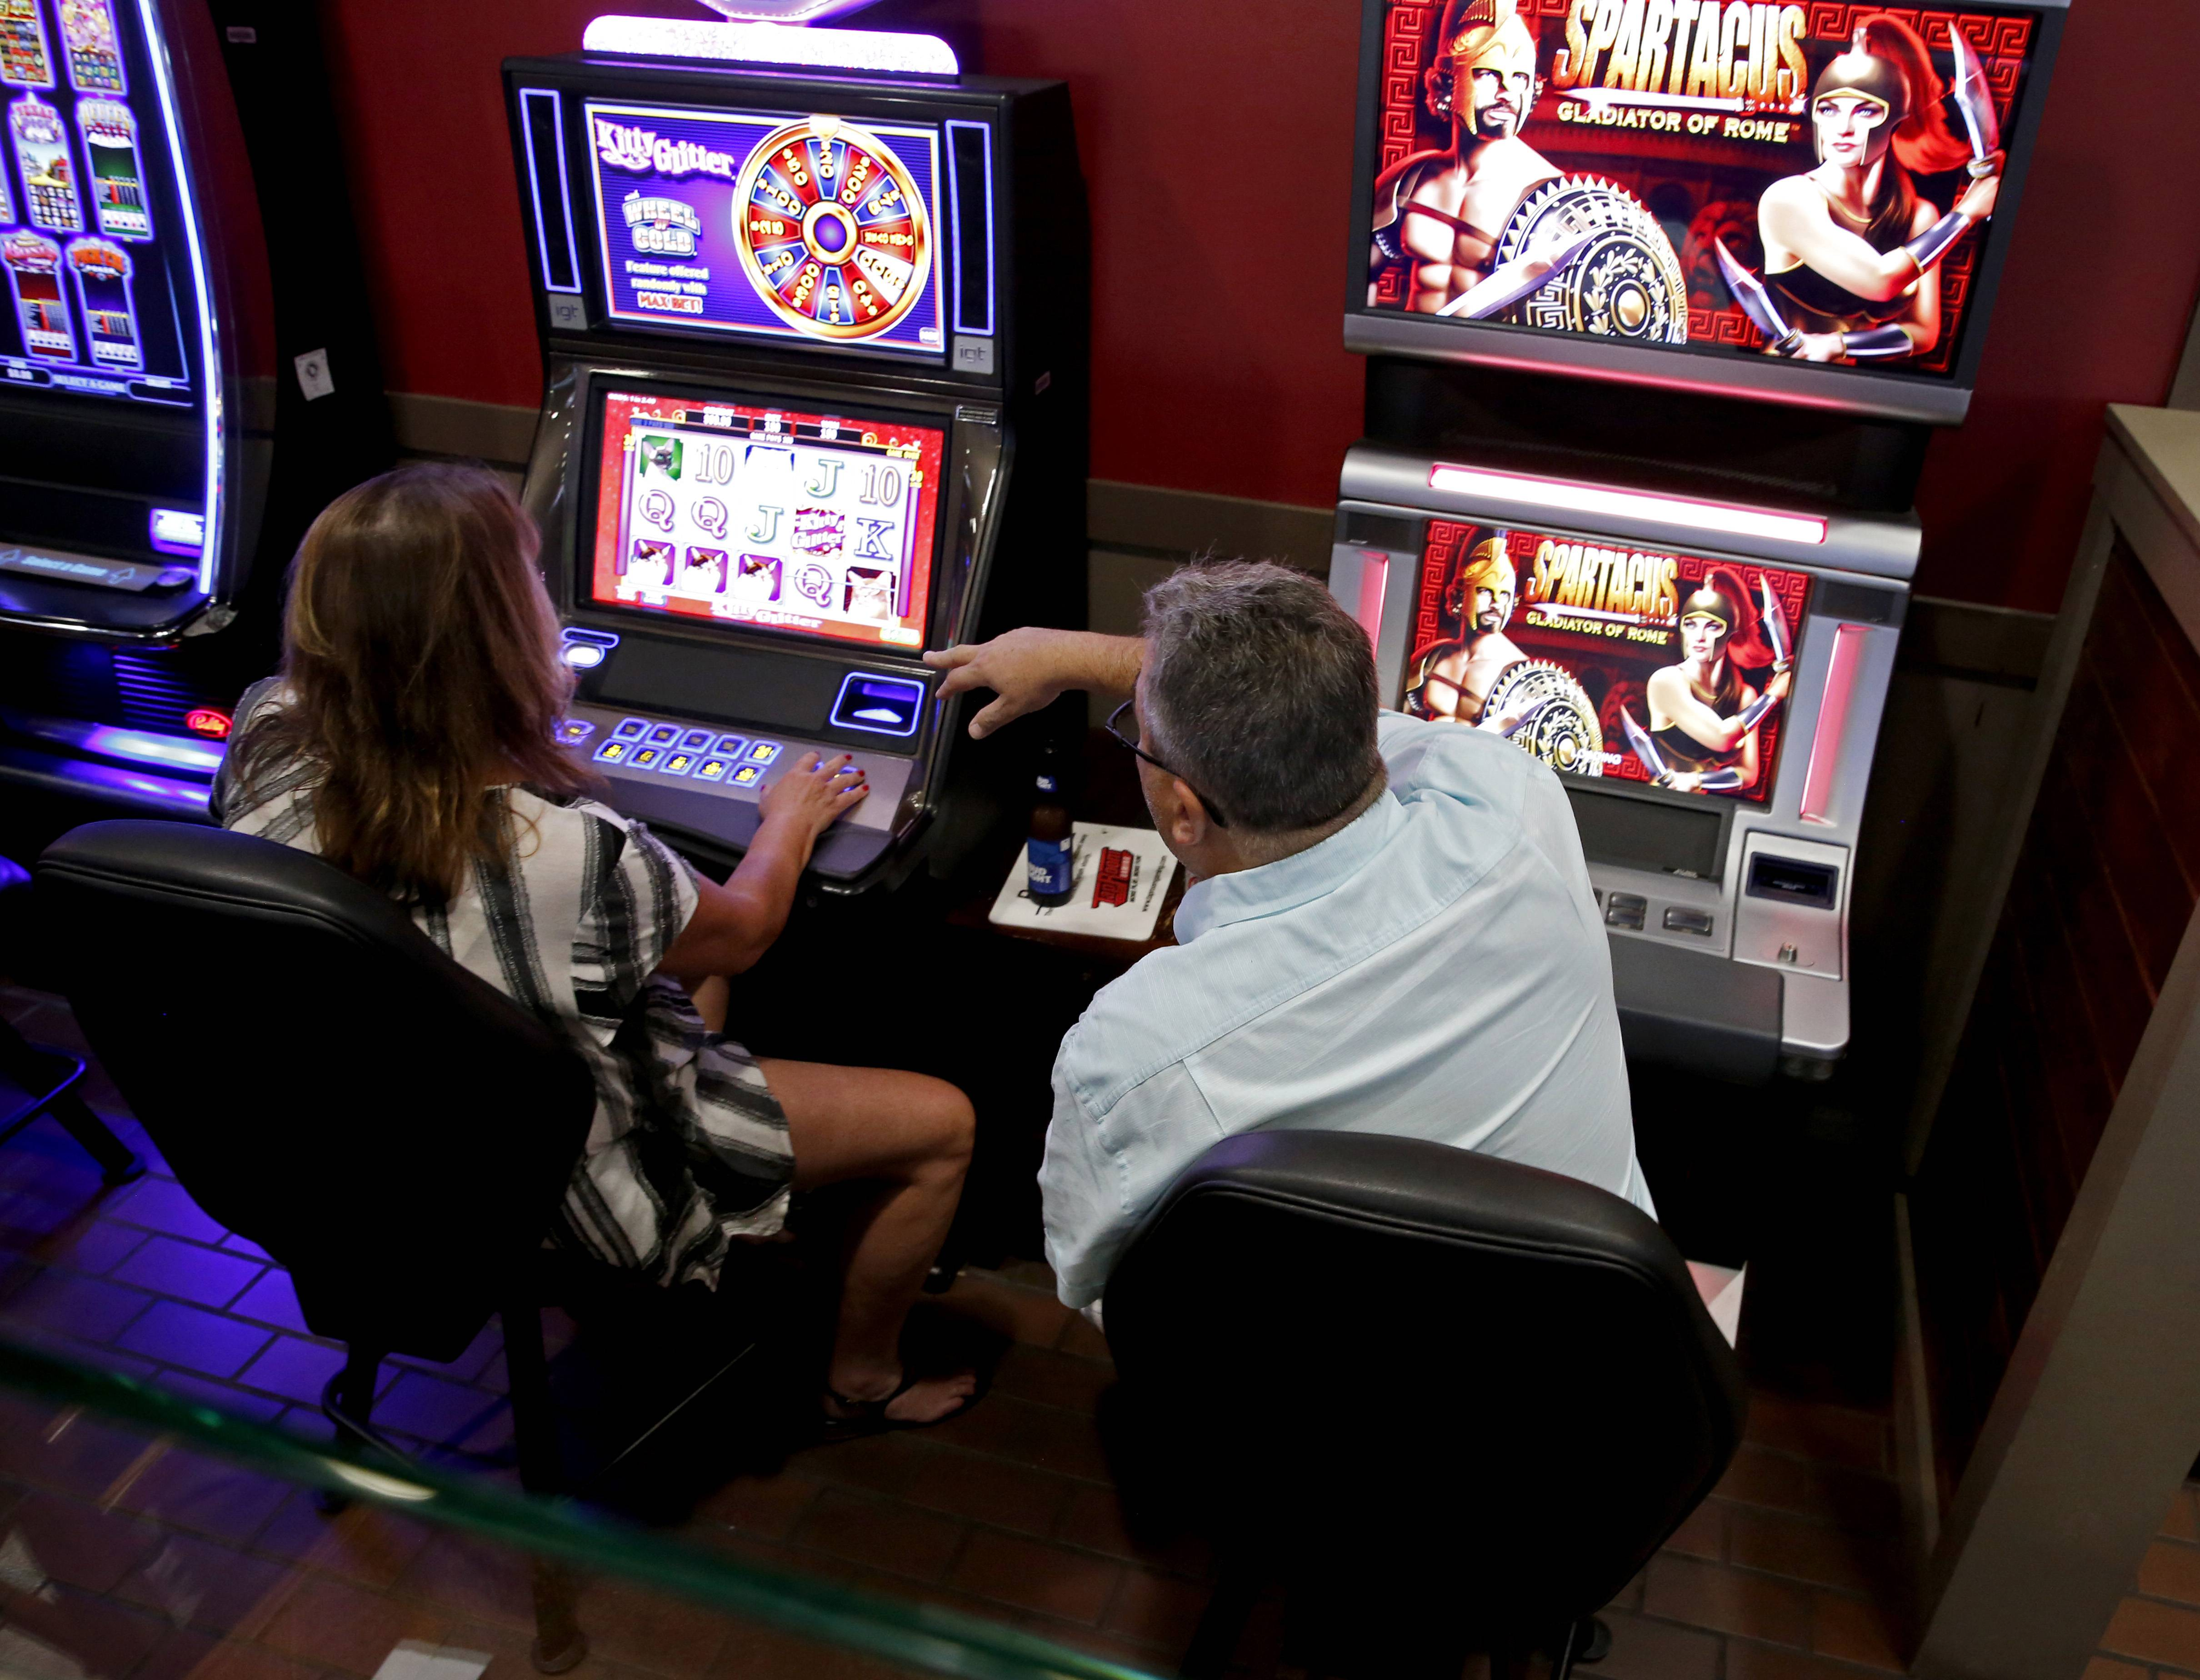 Video gambling machines, like these in Oakbrook Terrace, generate revenue for suburbs that allow them at bars, restaurants and other businesses. Wauconda officials are concerned about the proliferation of the machines in town.